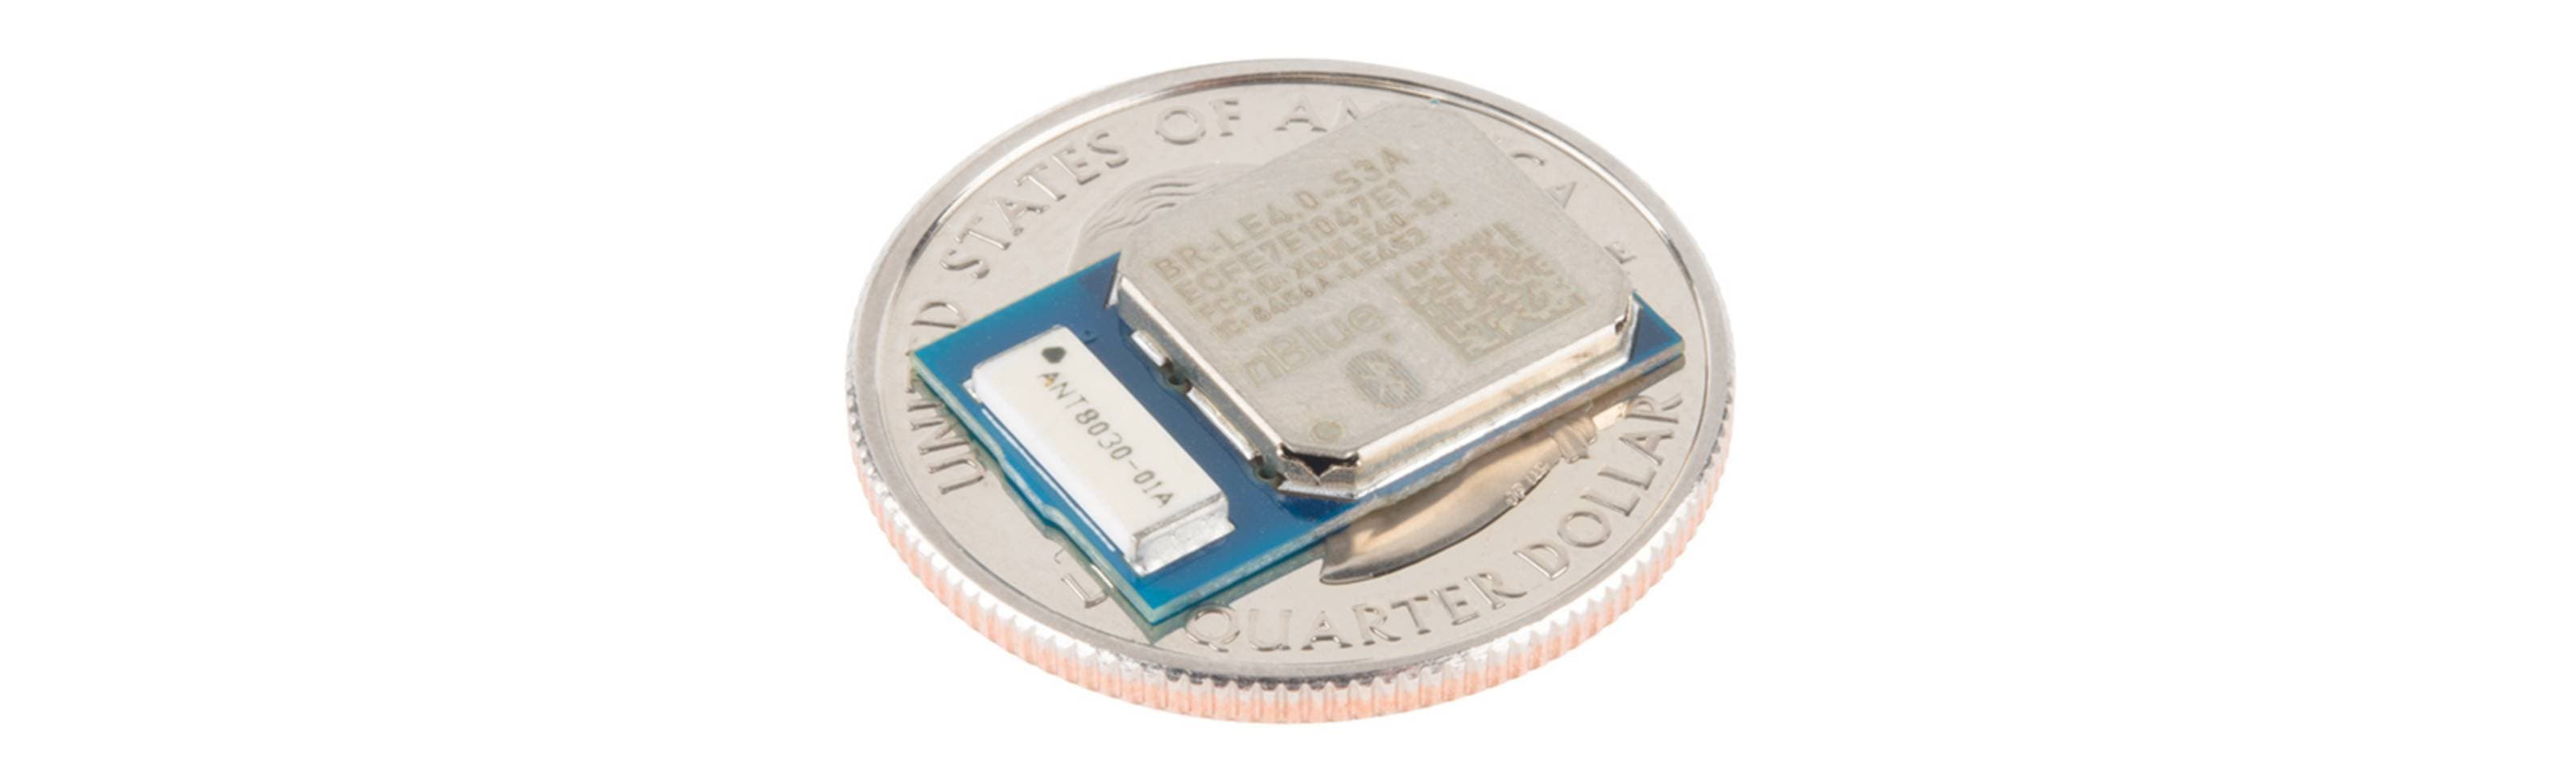 A Bluetooth chip on a coin